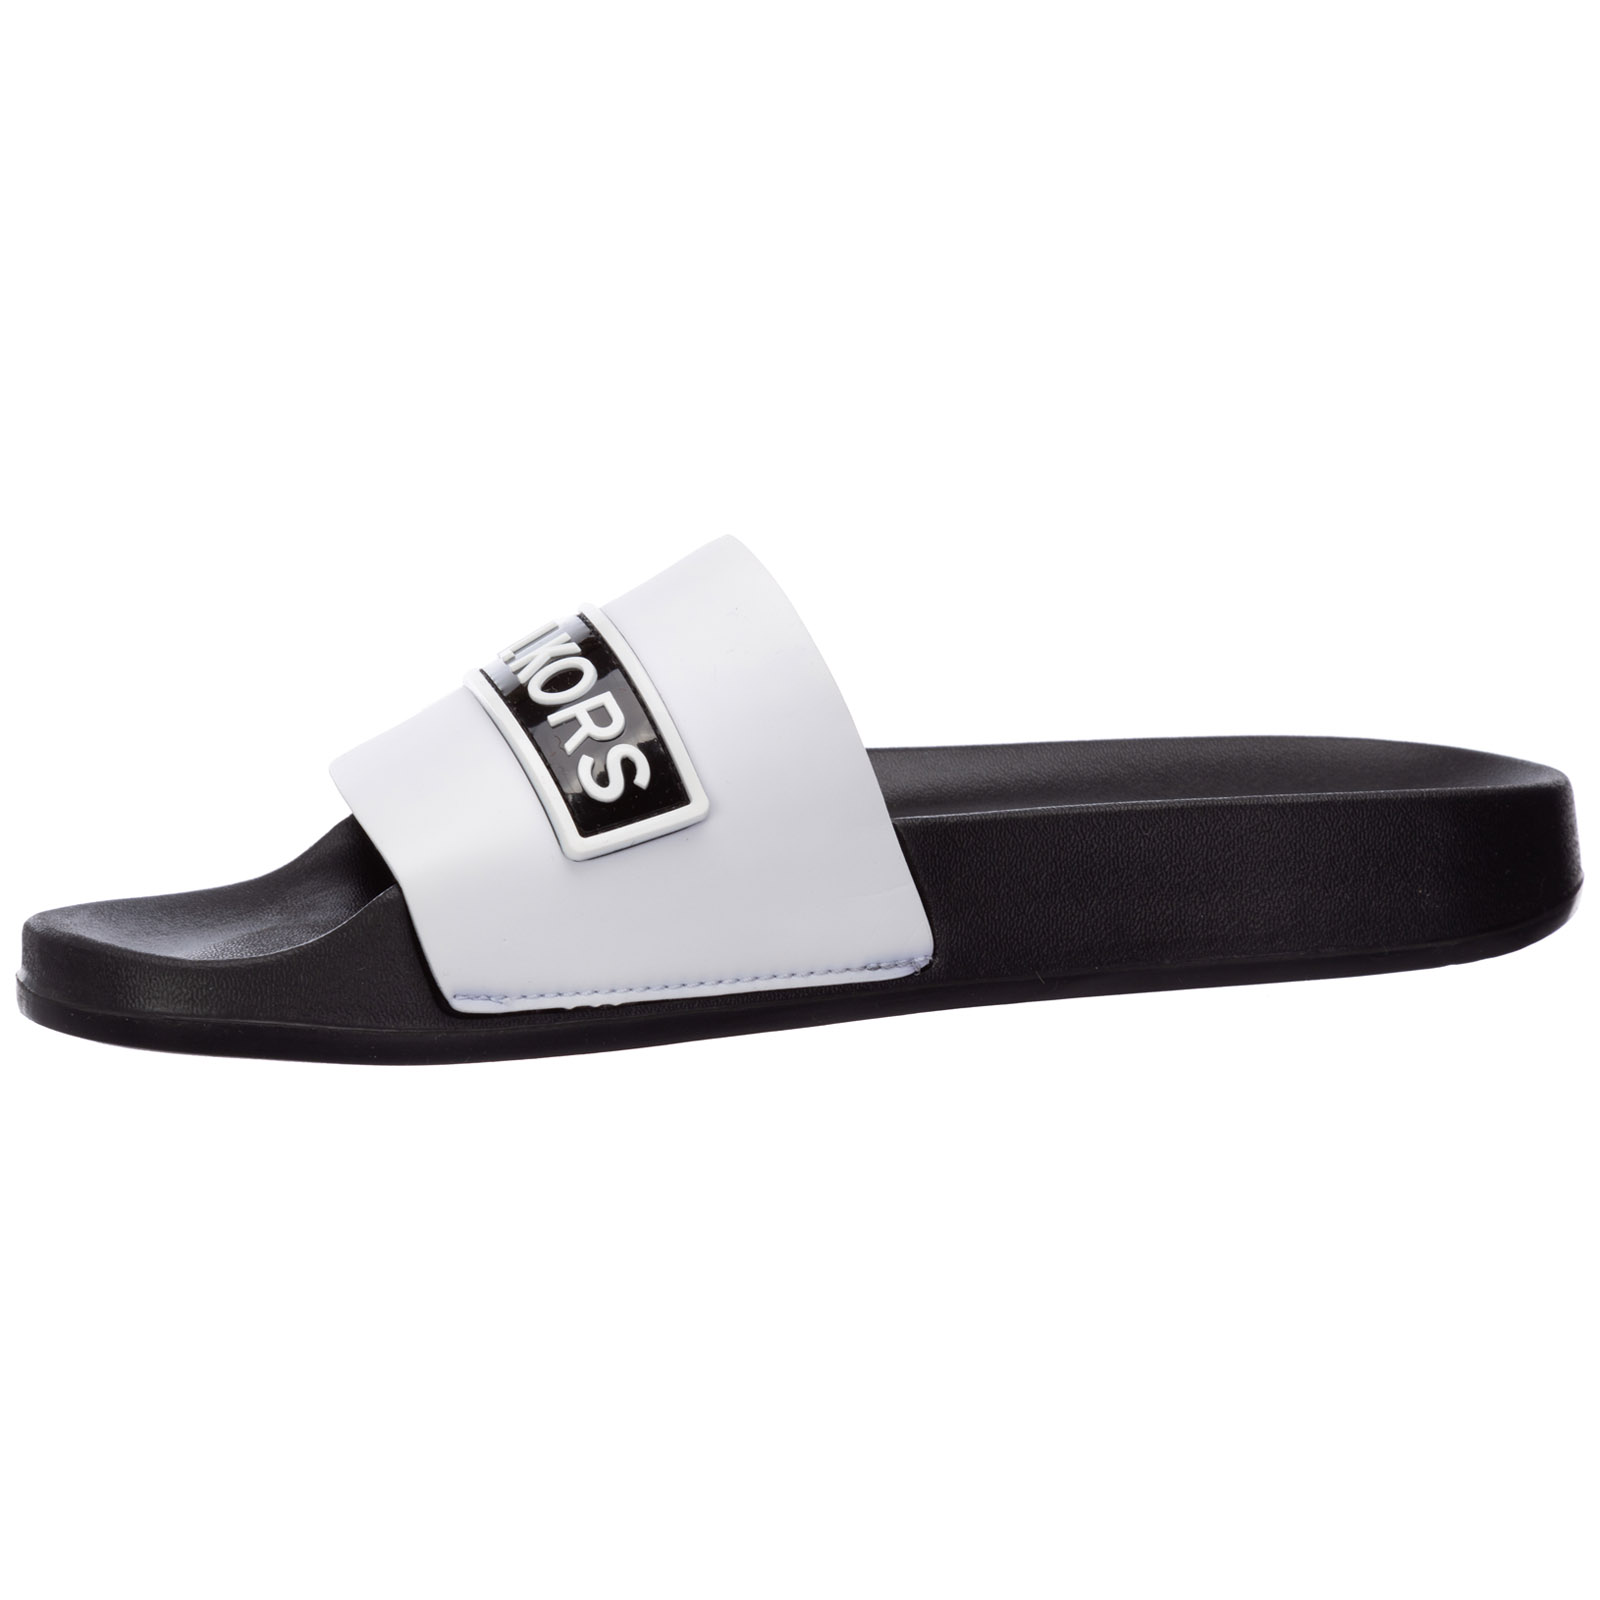 Women's rubber slippers sandals